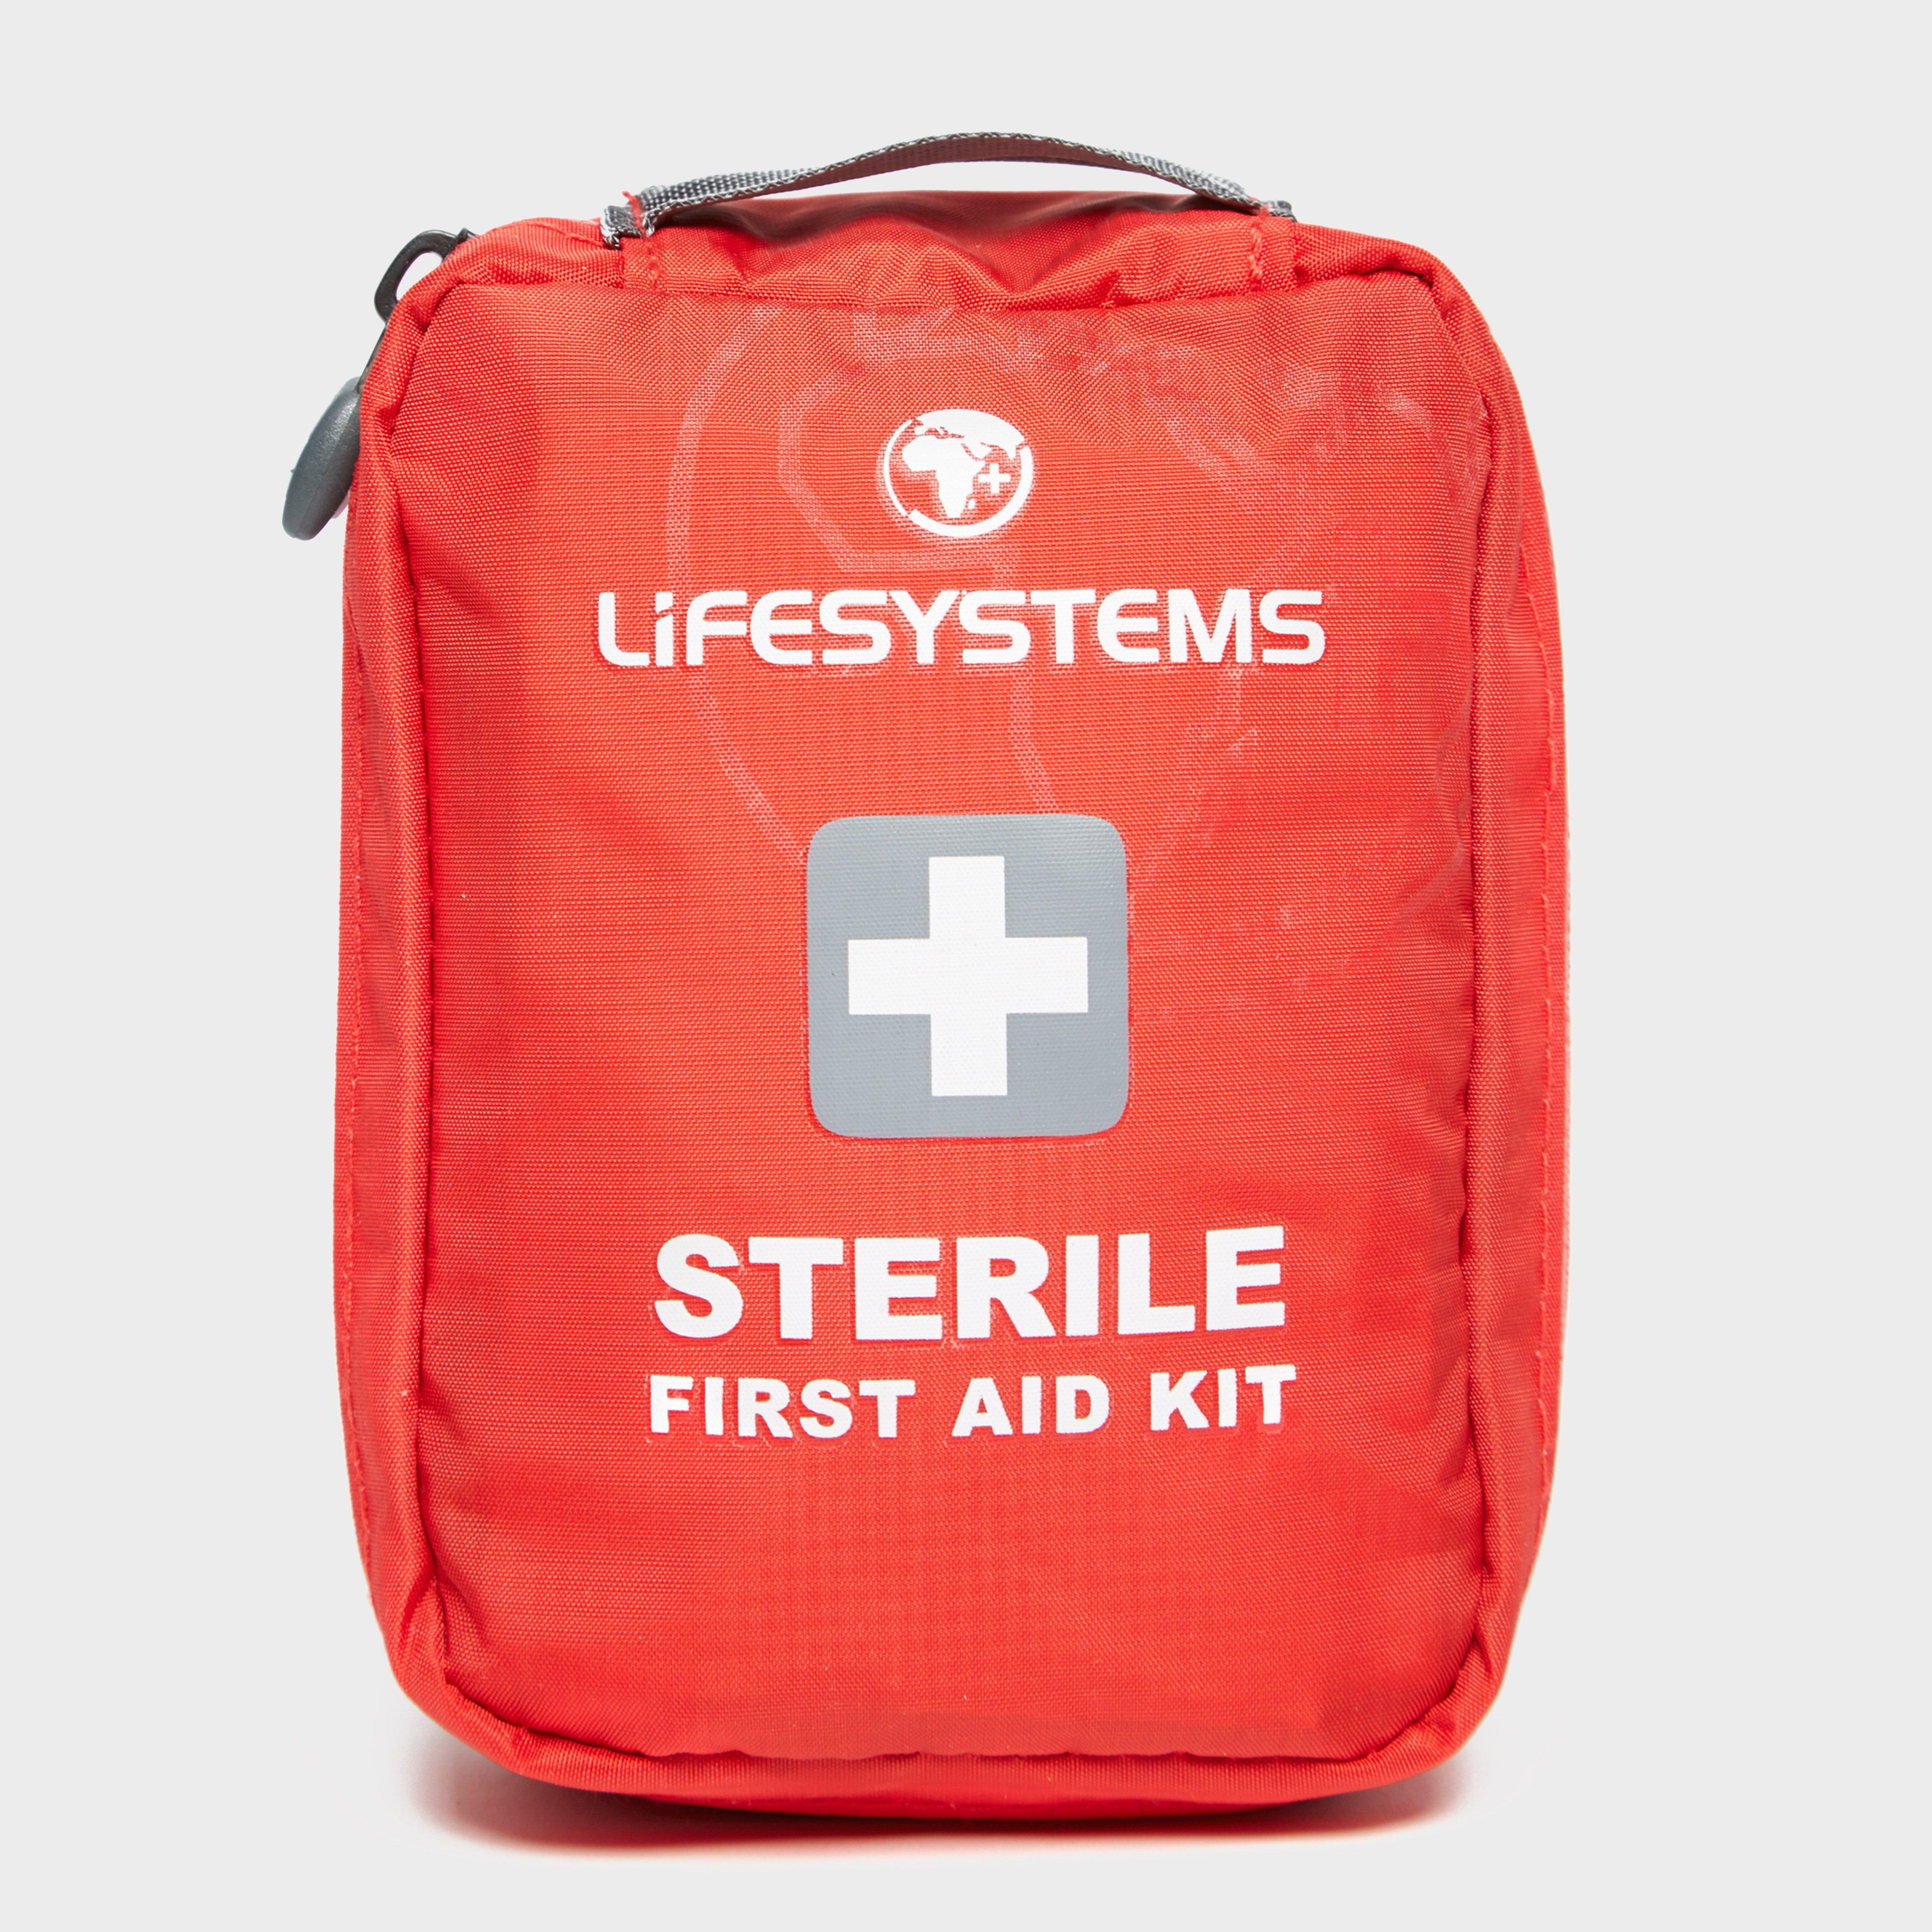 Lifesystems Lifesystems Sterile First Aid Kit - Red, Red